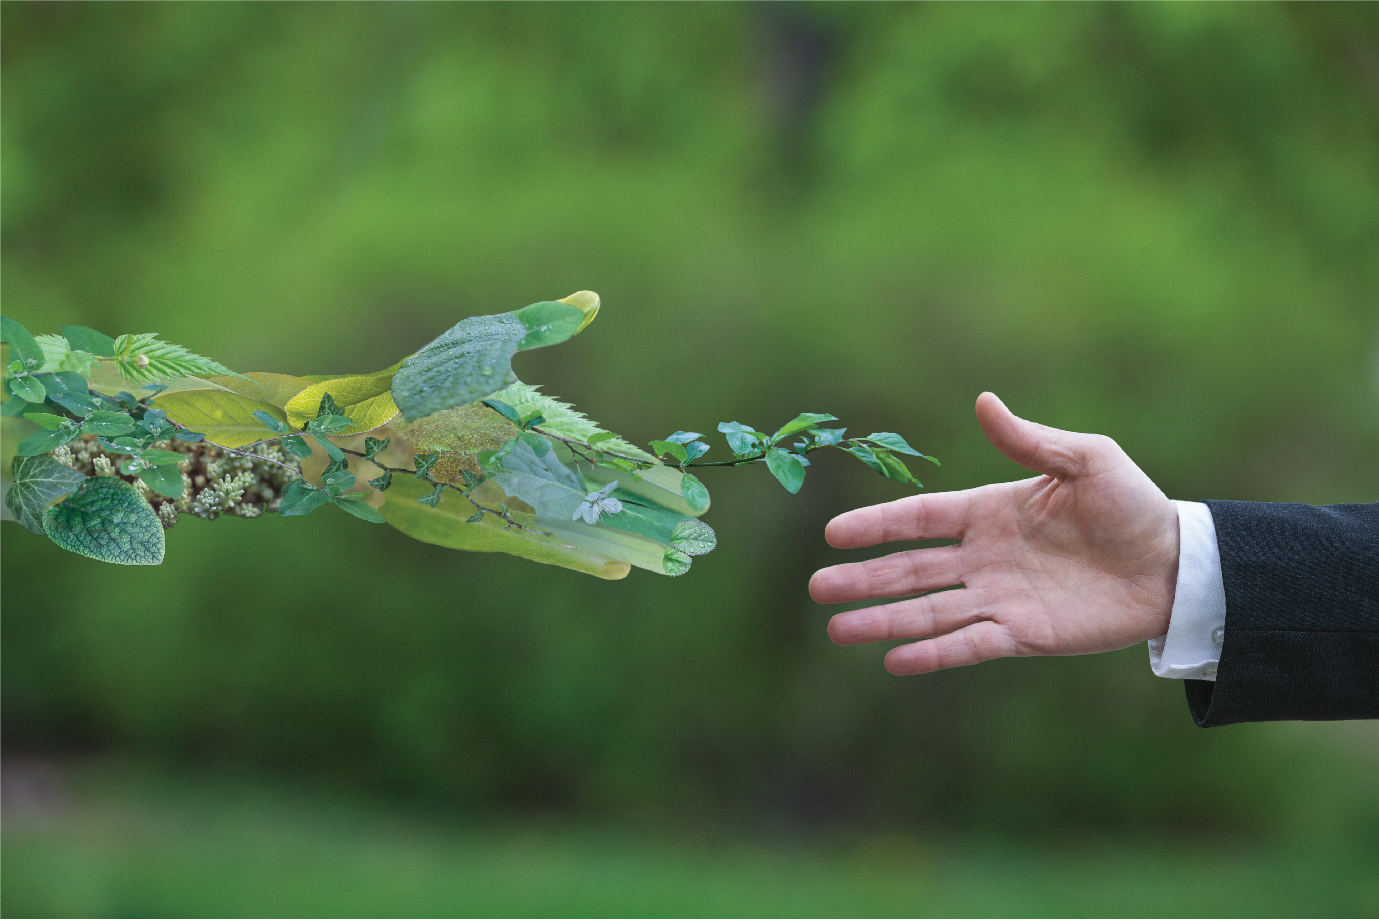 A hand covered in leaves reaching out to shake a human hand